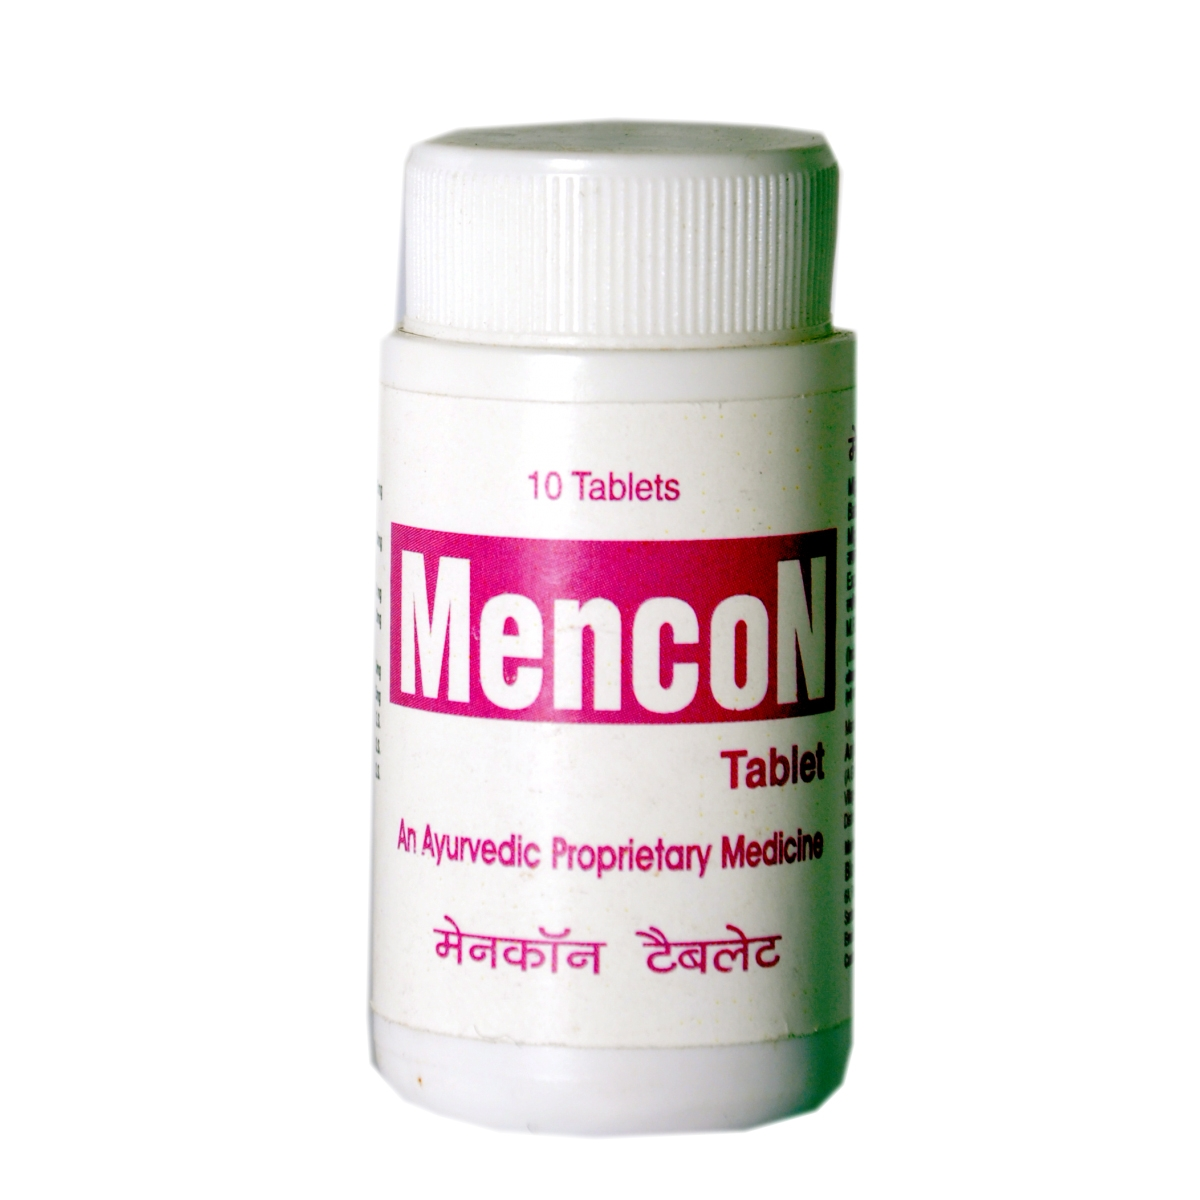 Mencon Tablet In Raigarh